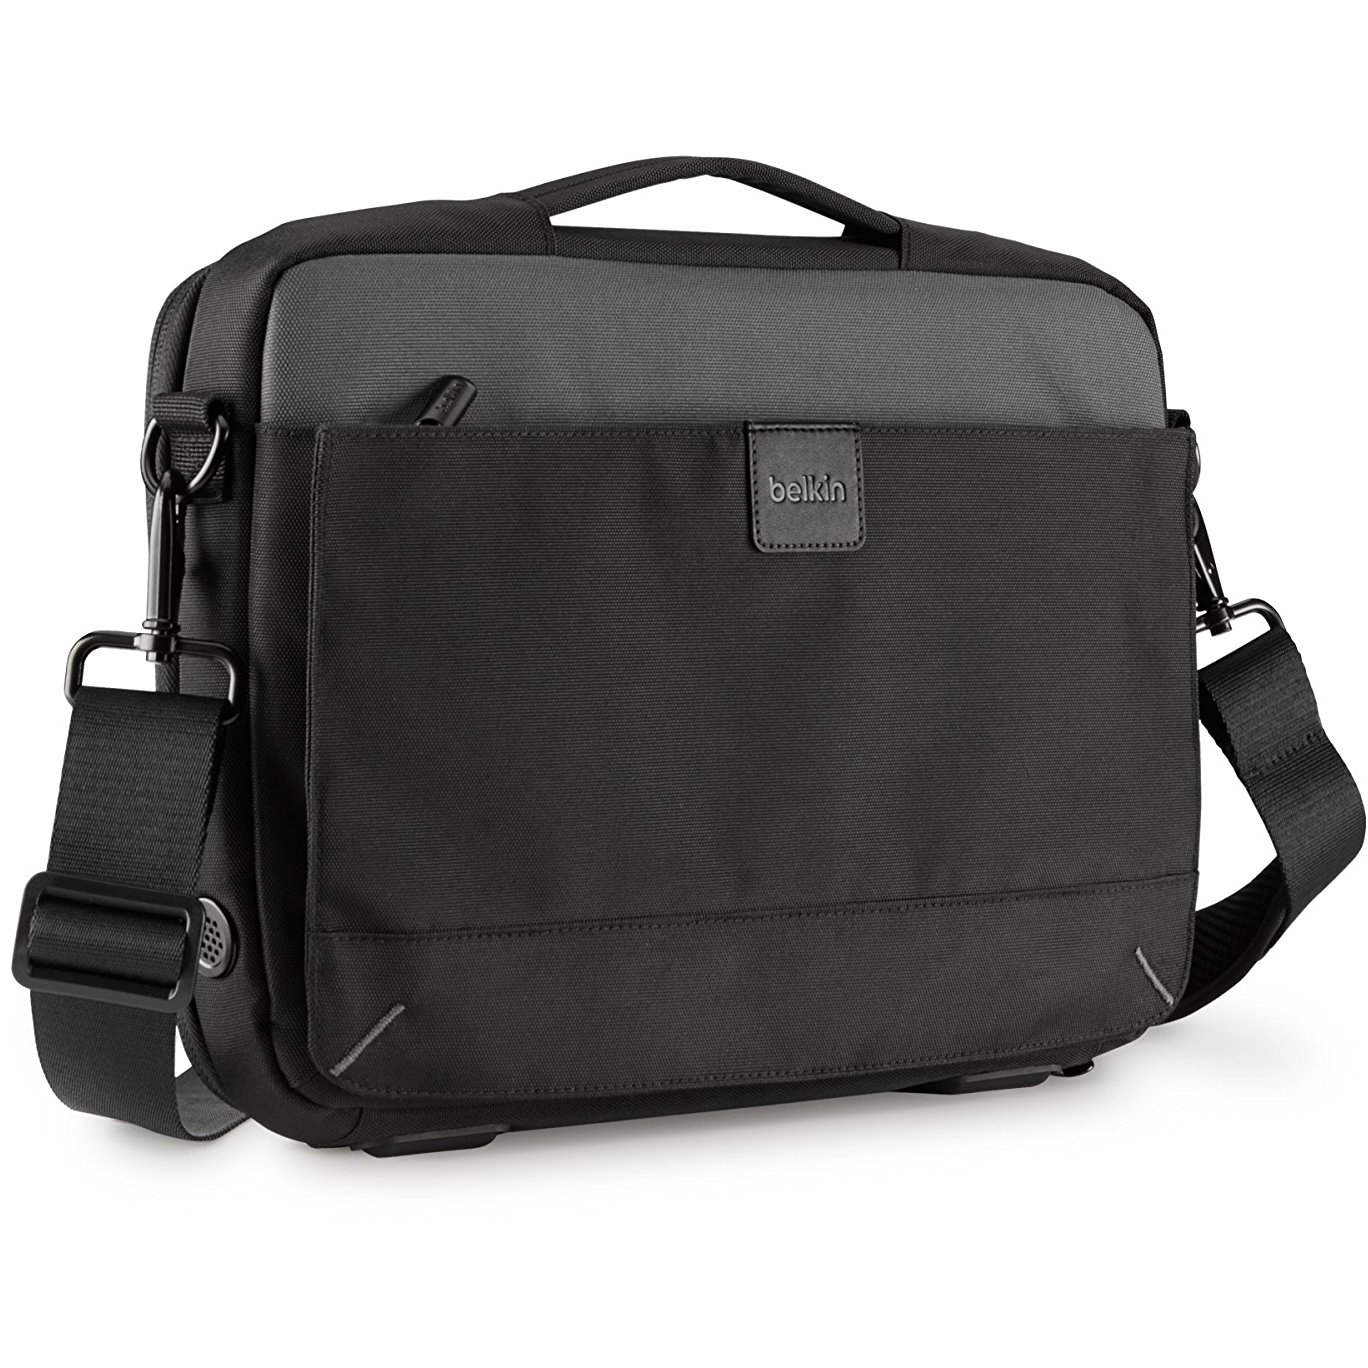 "Belkin Air Protect Carrying Case for 11"" Notebook, Black/Gray"